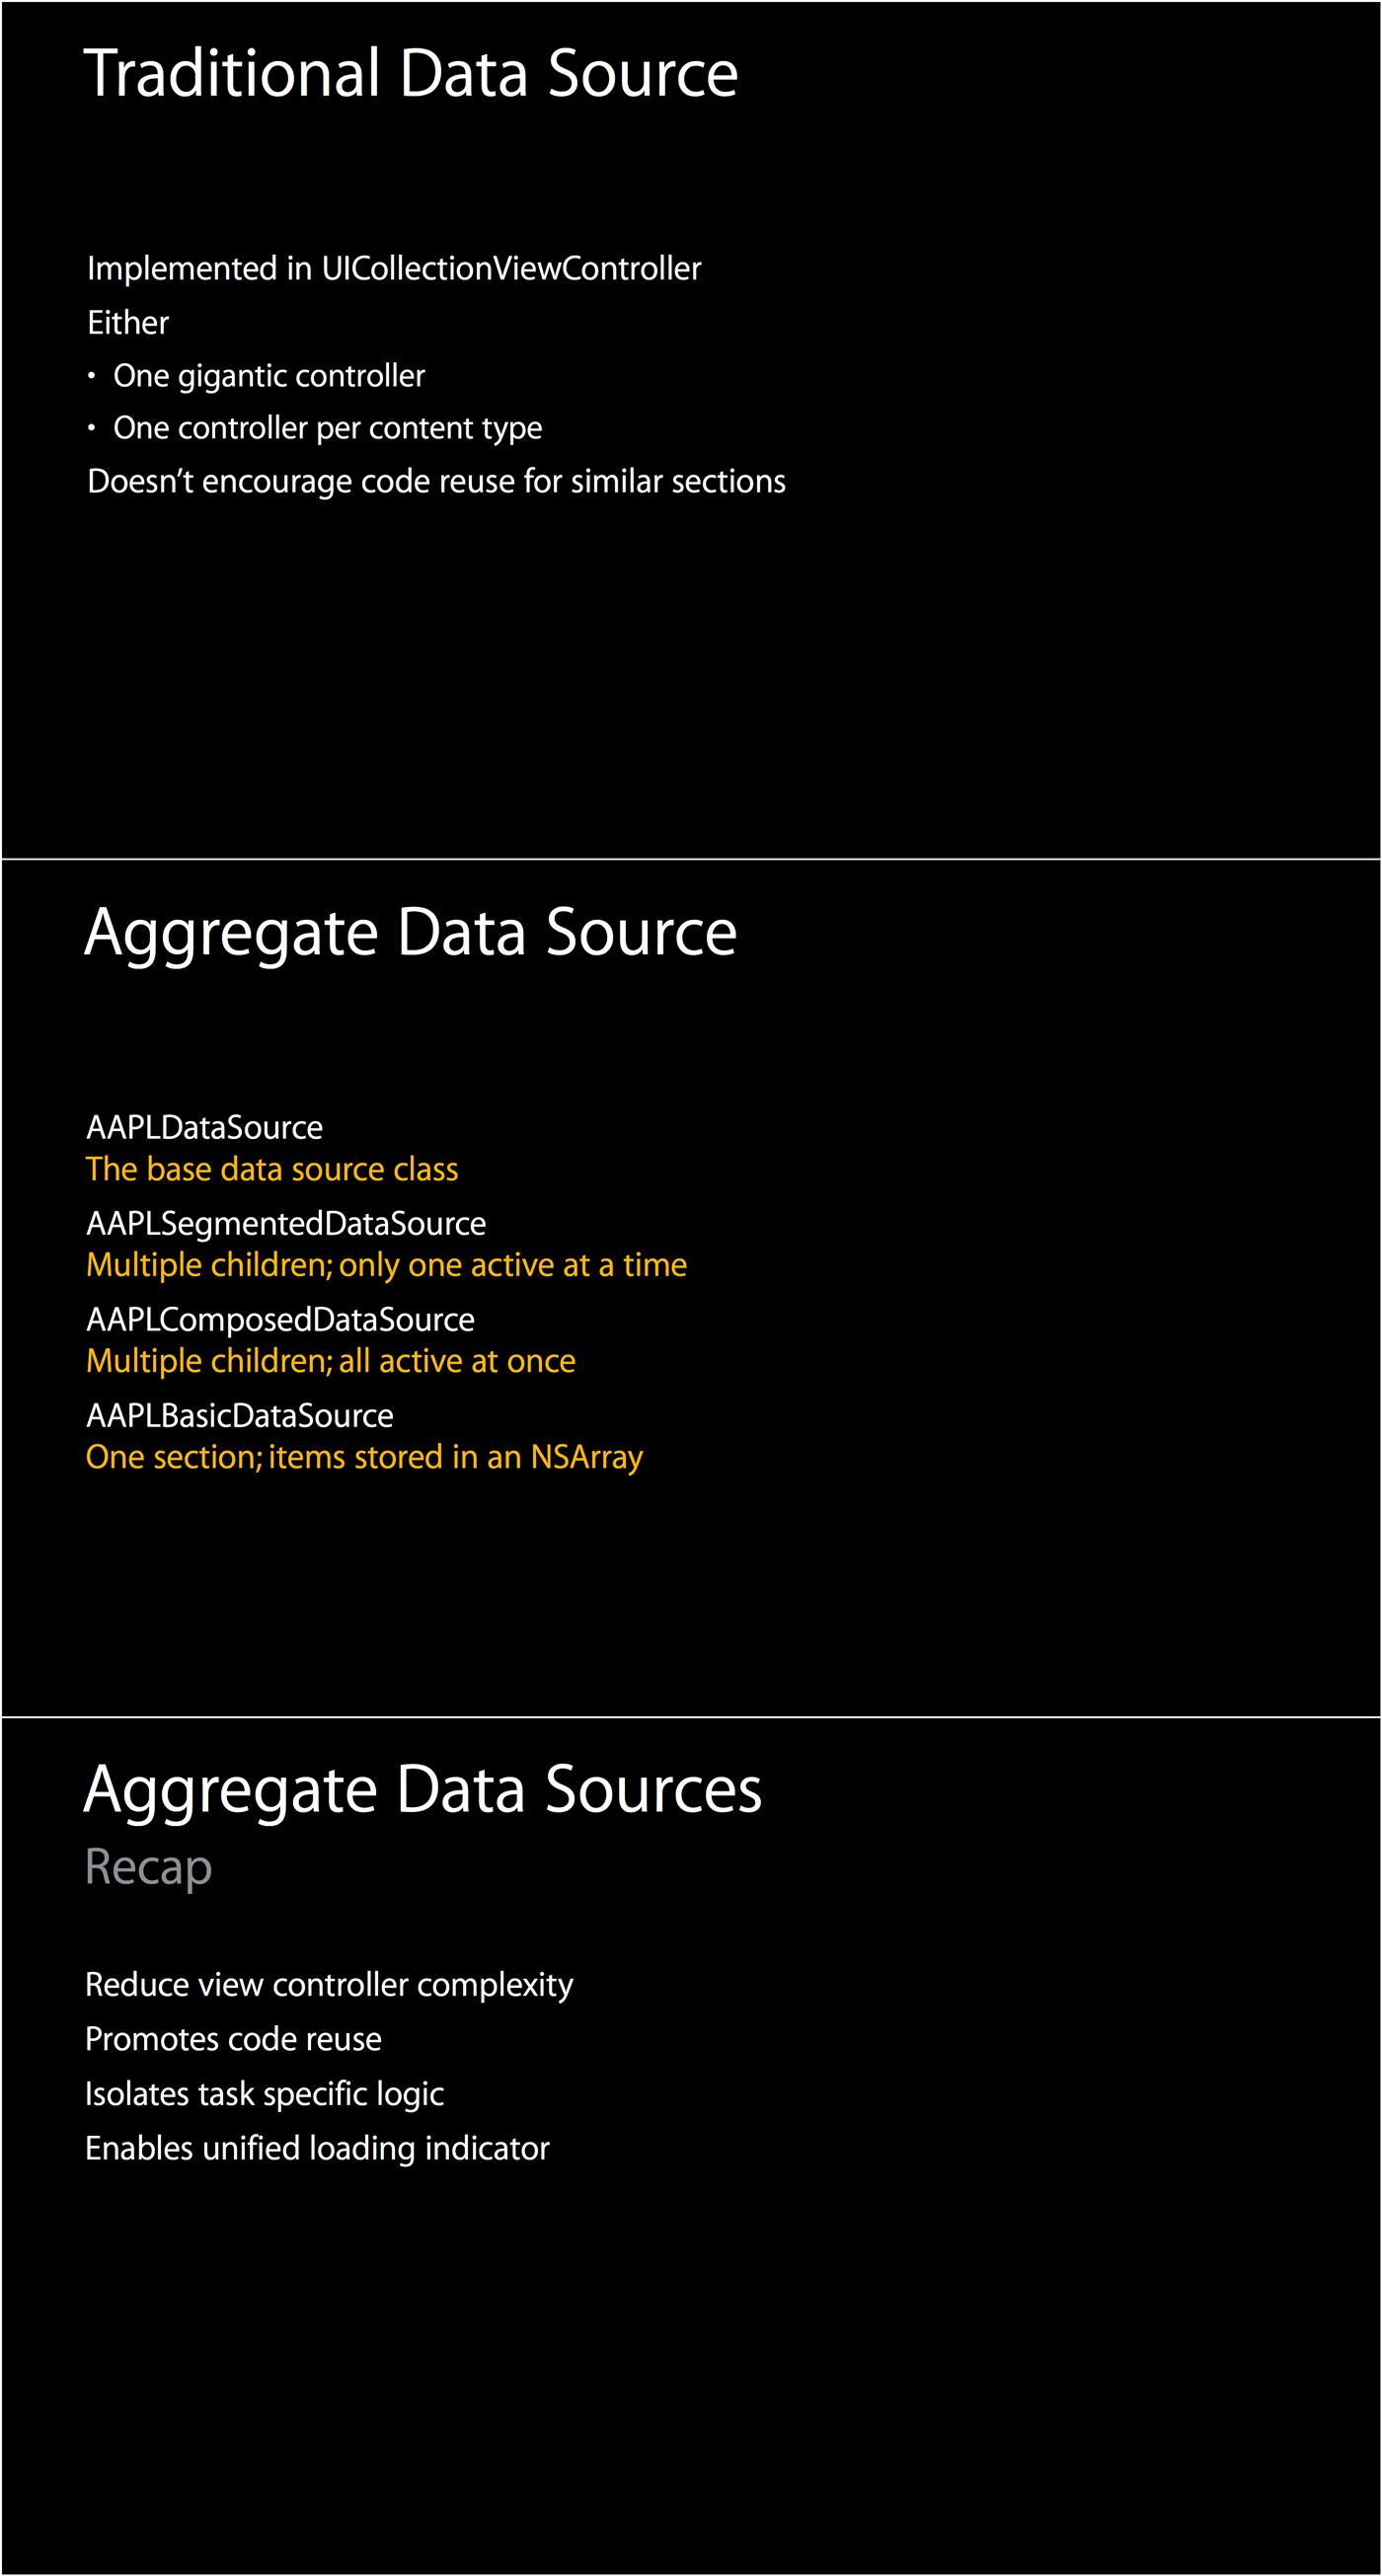 Slides from WWDC 2014 session 232 about aggregate data sources